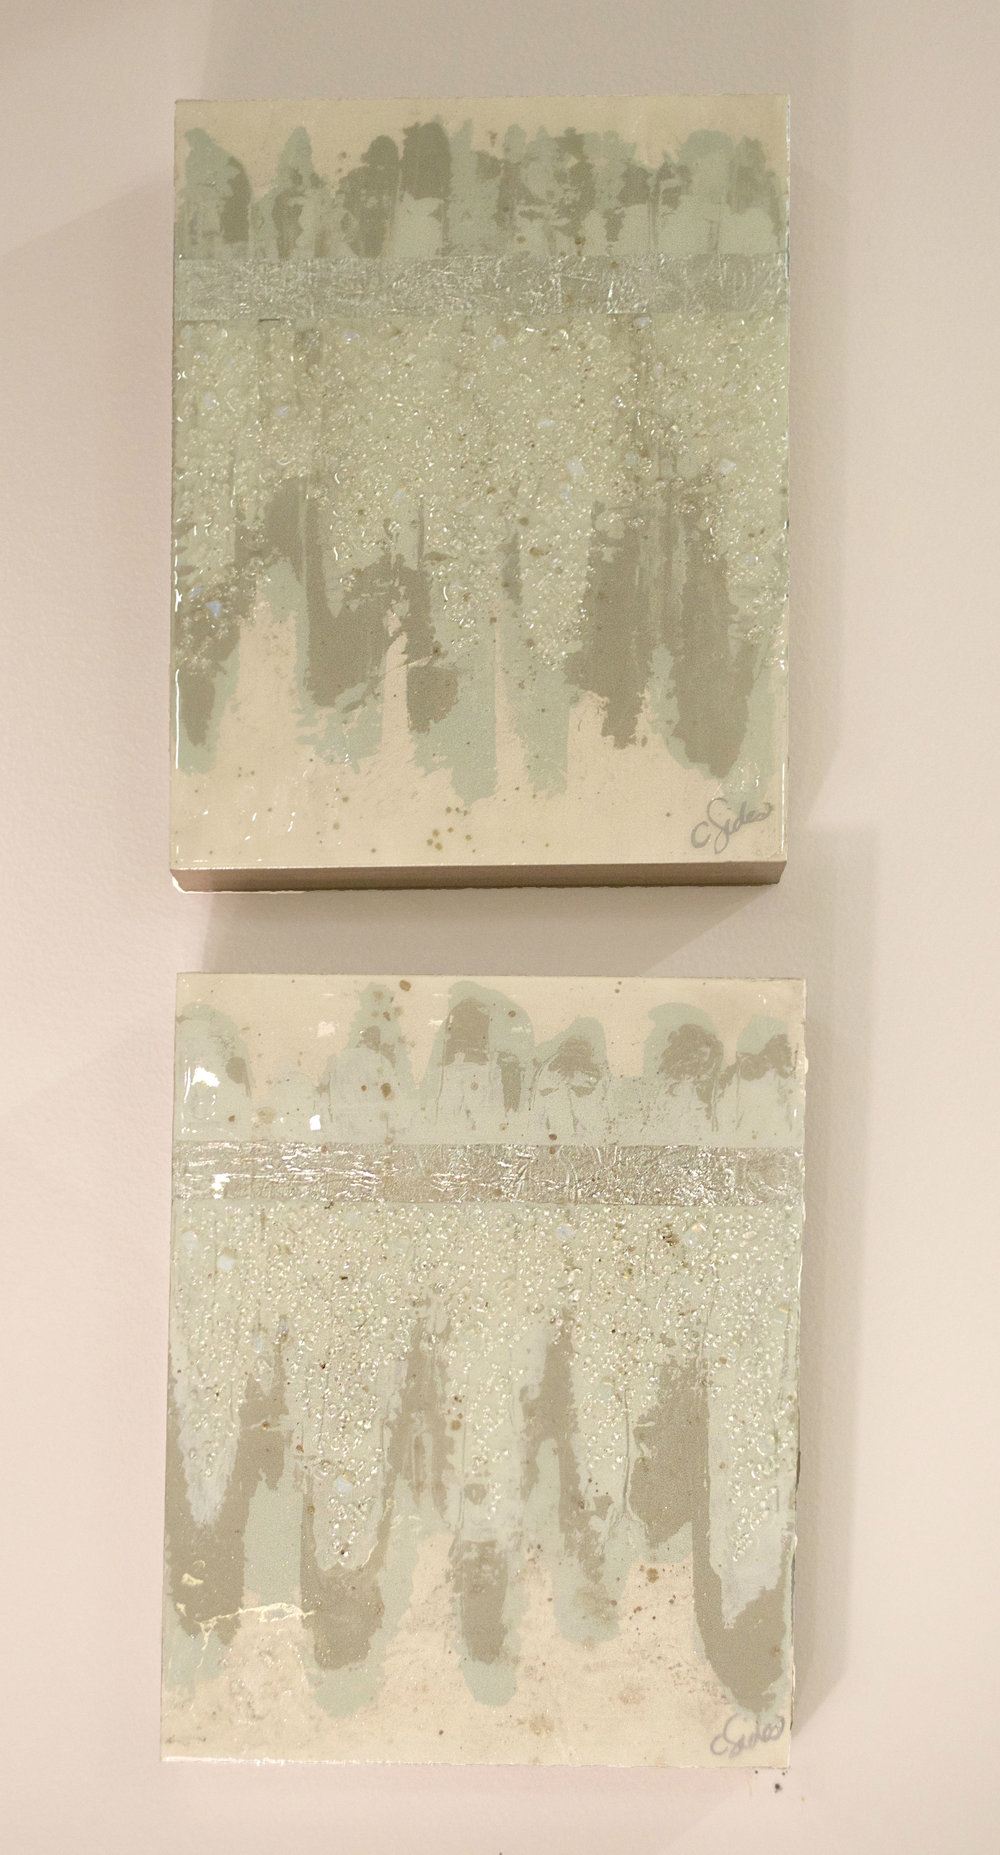 Silver & Gray Painting - # 11291